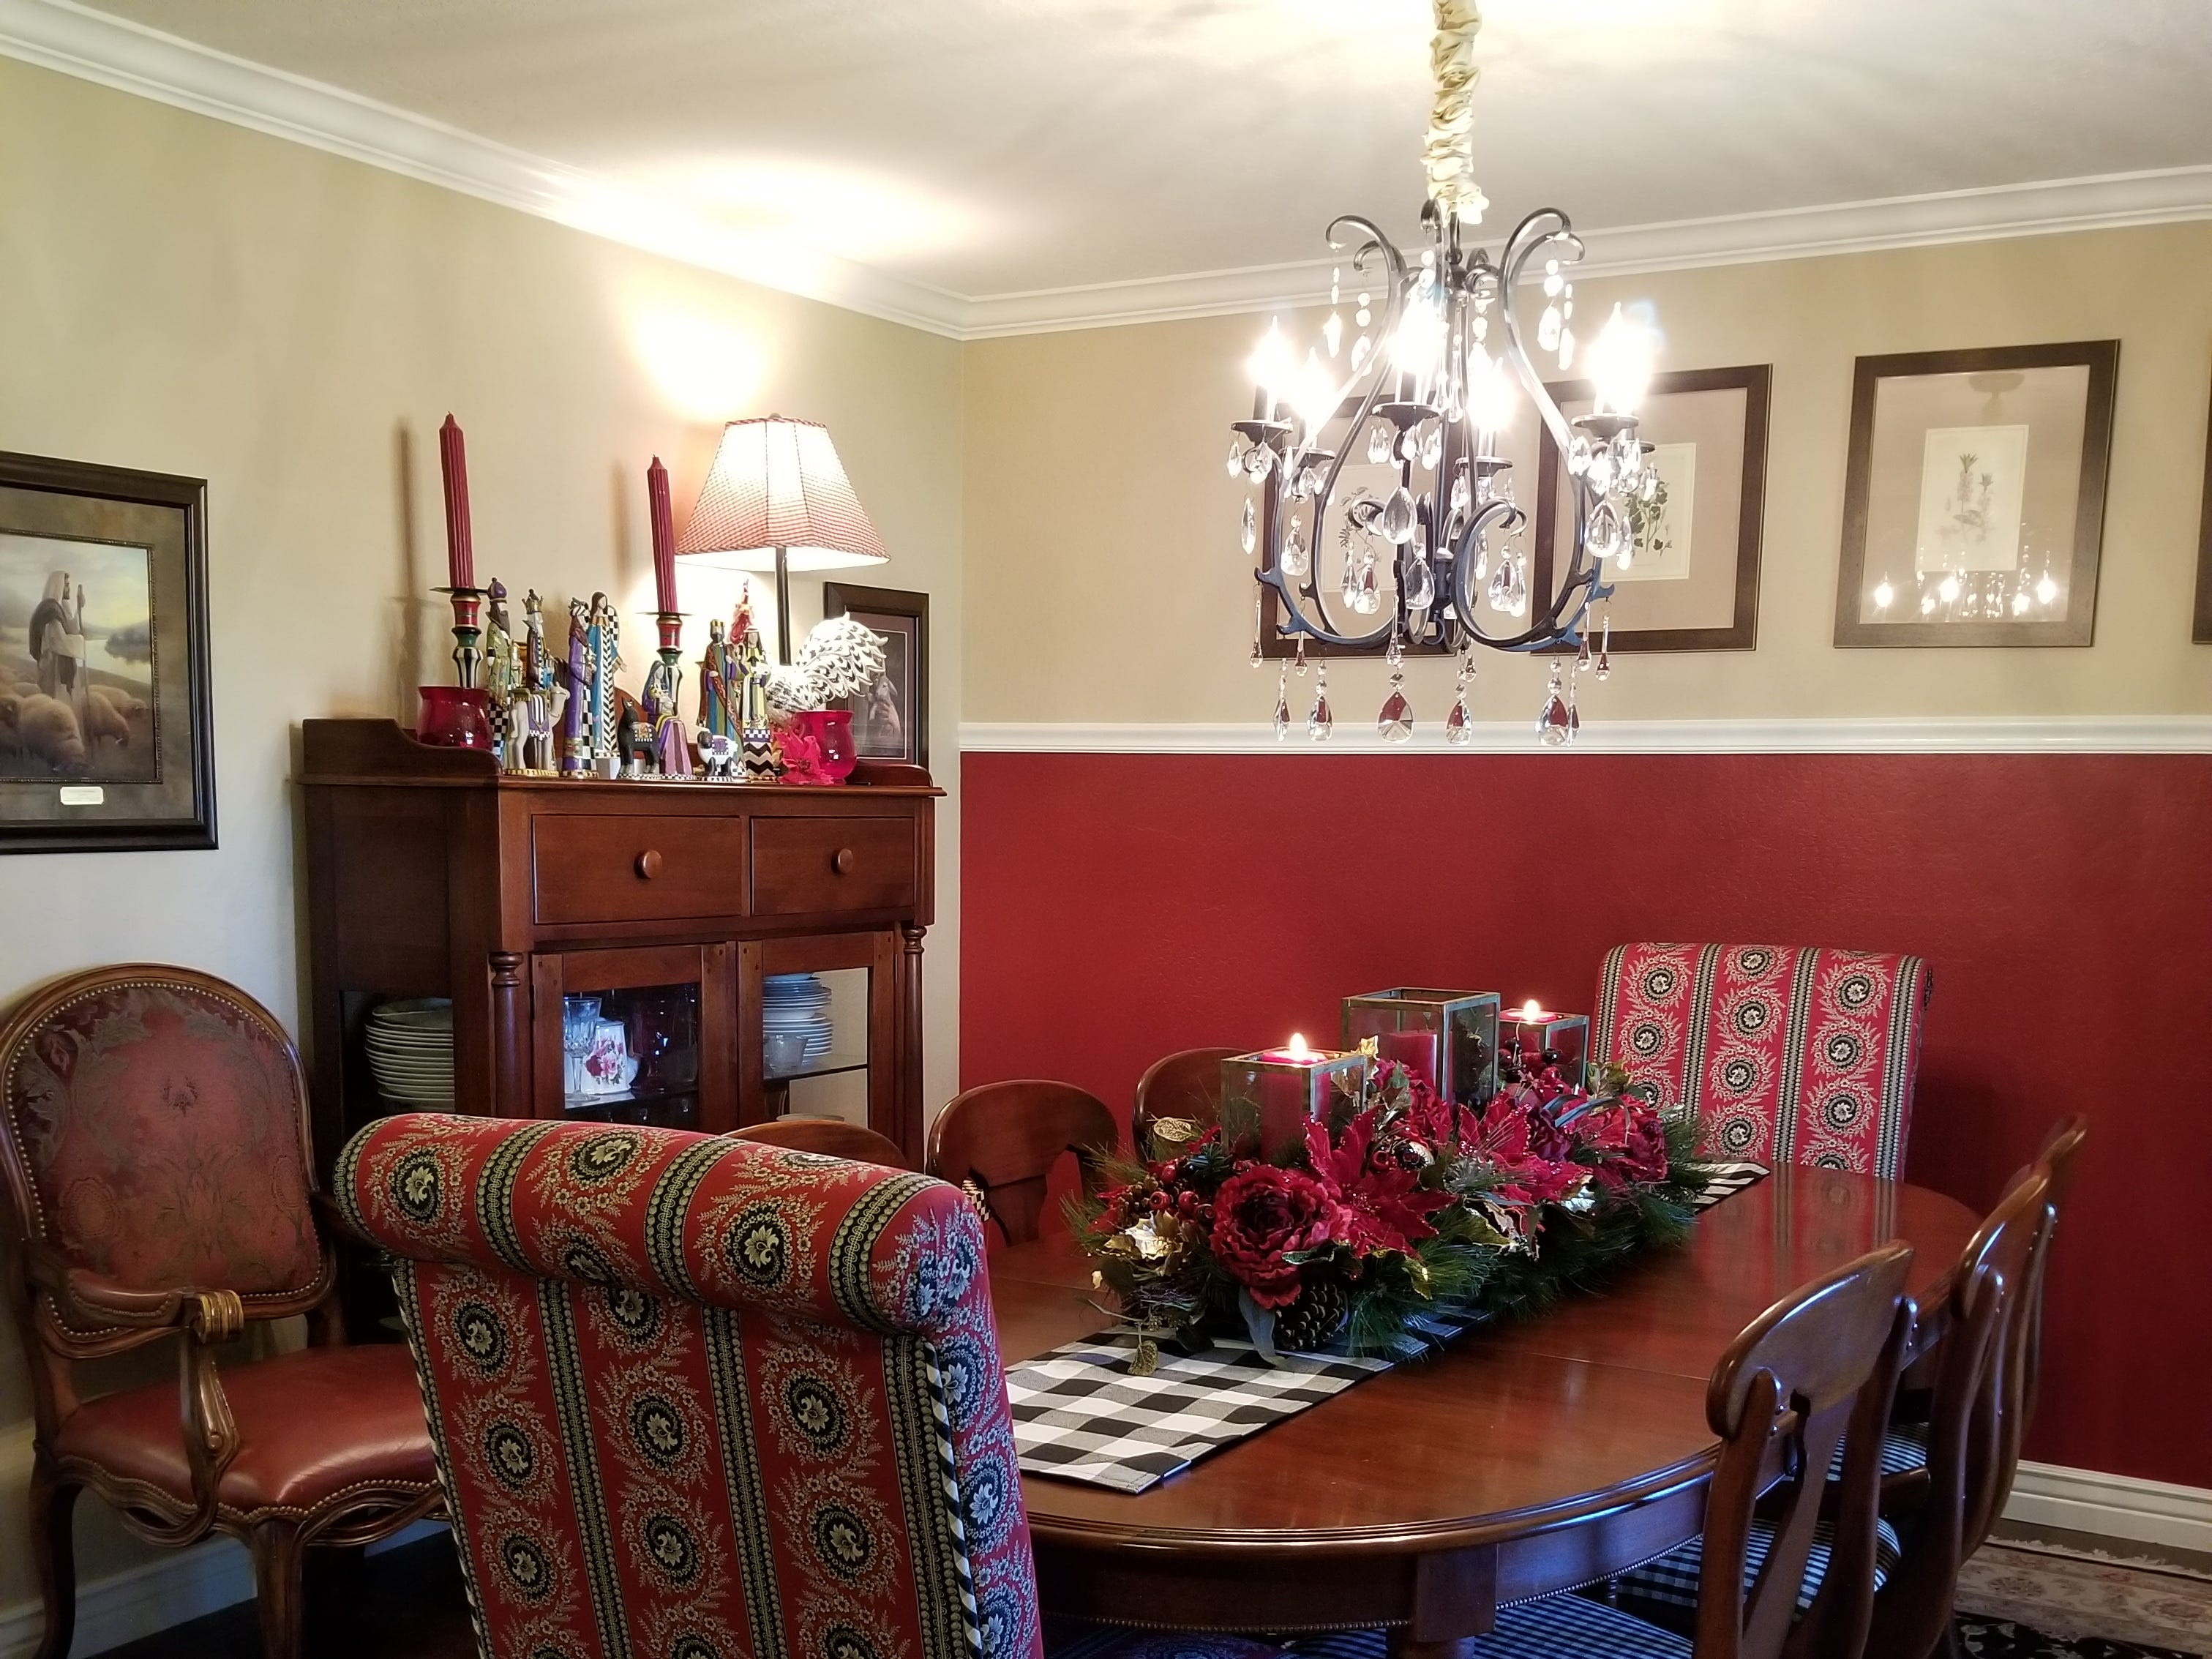 The sunken dining room sits to right of entry. Rich in design, it features exquisite draperies and sheers frame the oversize window and views of the front porch. Two upholstered chairs anchor the large table at opposite ends; the remaining seating for eight sports black and white checkered seats on wooden frames. Crown moldings and a crystal chandelier complete the scene, with a Turkish area rug purchased during travels there completing the formal yet inviting dining room. A black and white checkered table runner pulls from the kitchen décor.